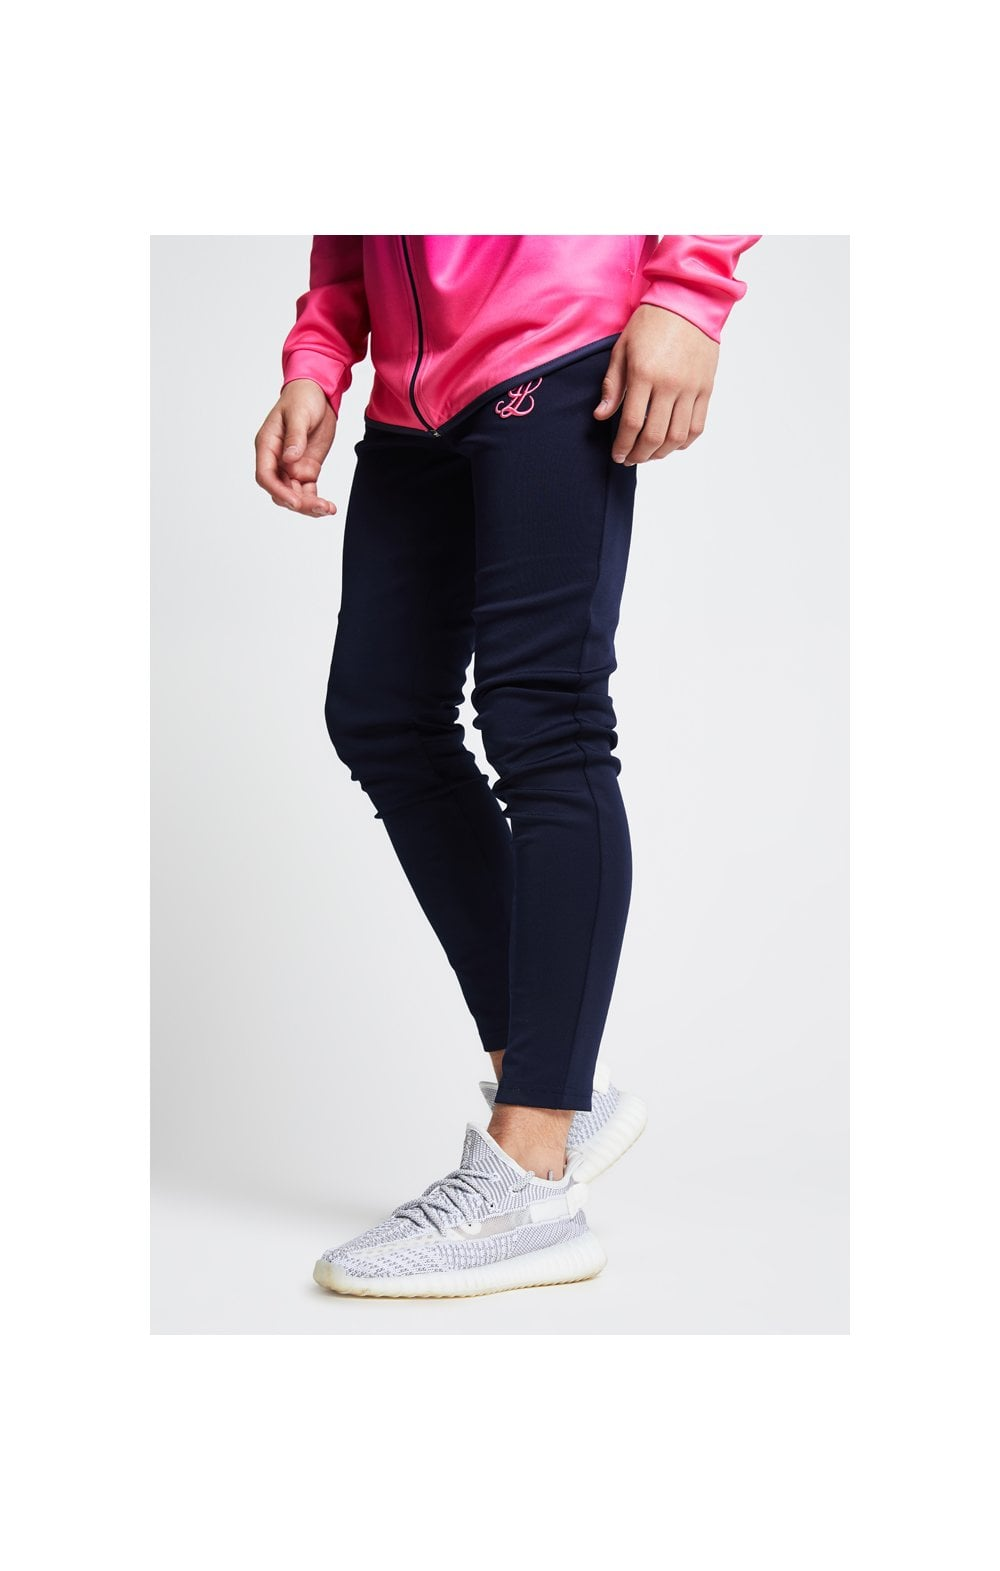 Illusive London Athlete Pants - Navy